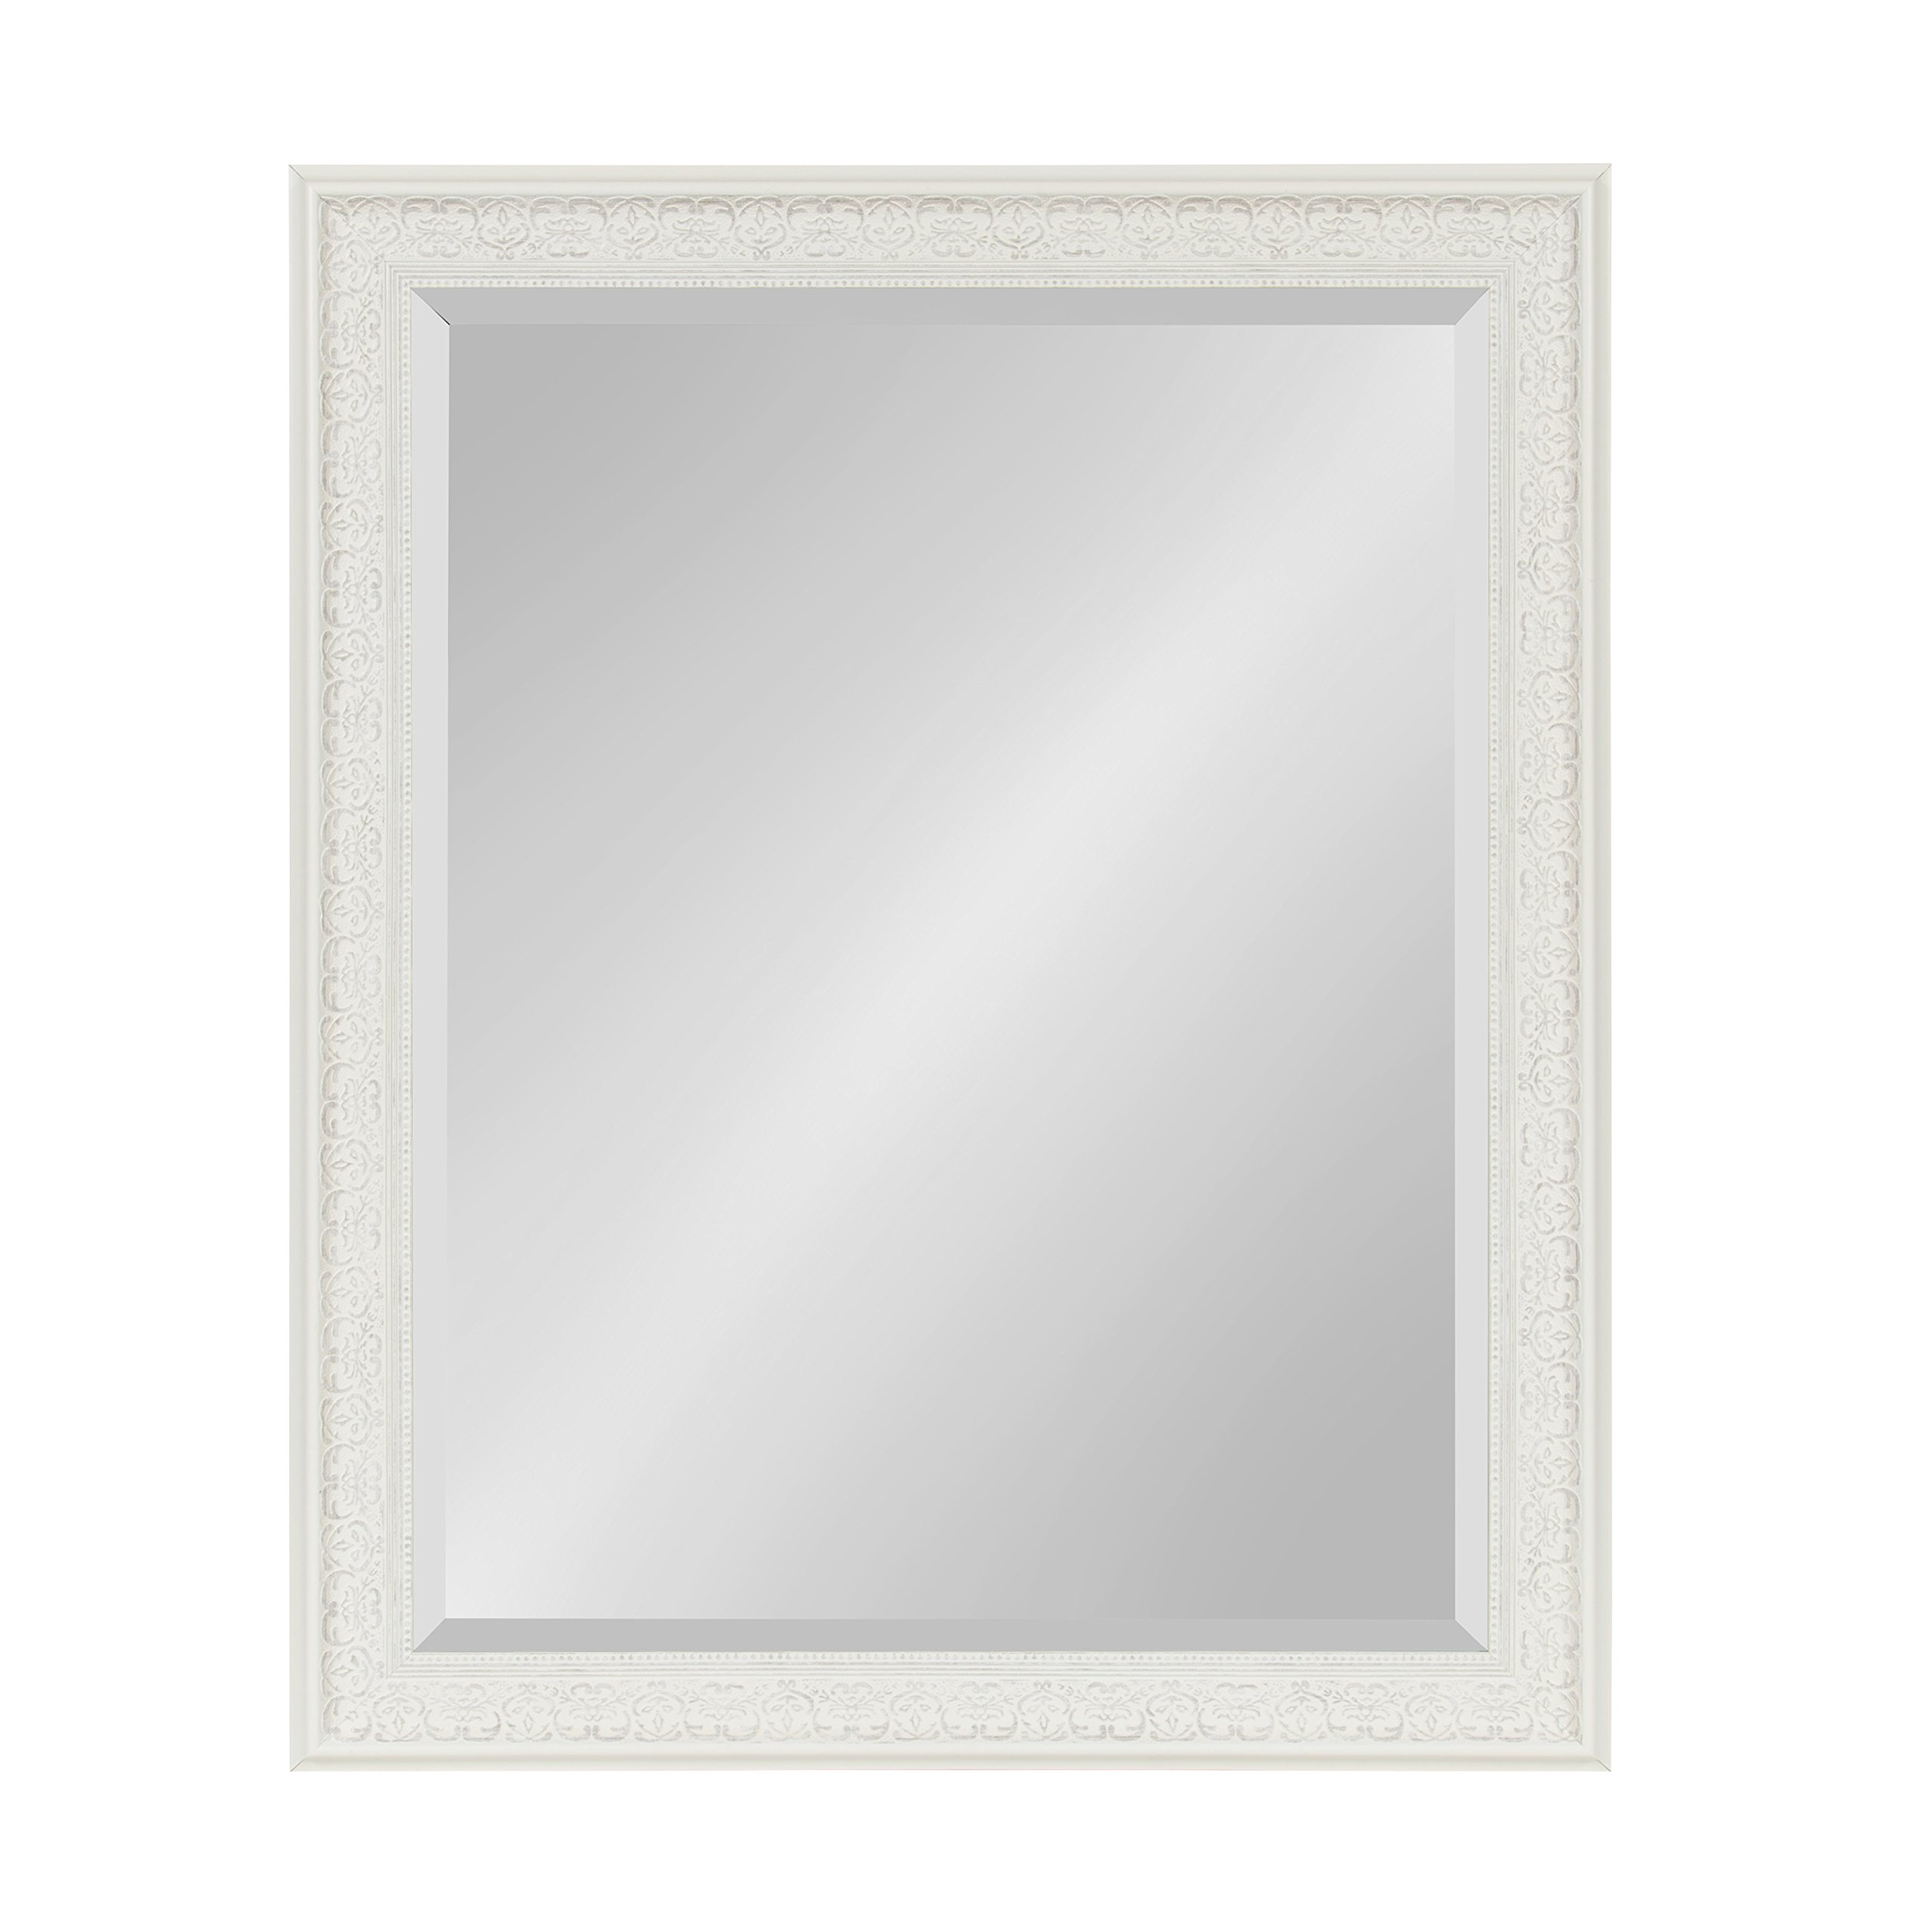 Kate and Laurel Alysia Large Decorative Frame Rectangle Wall Mirror, 26.5 x 32.5 White